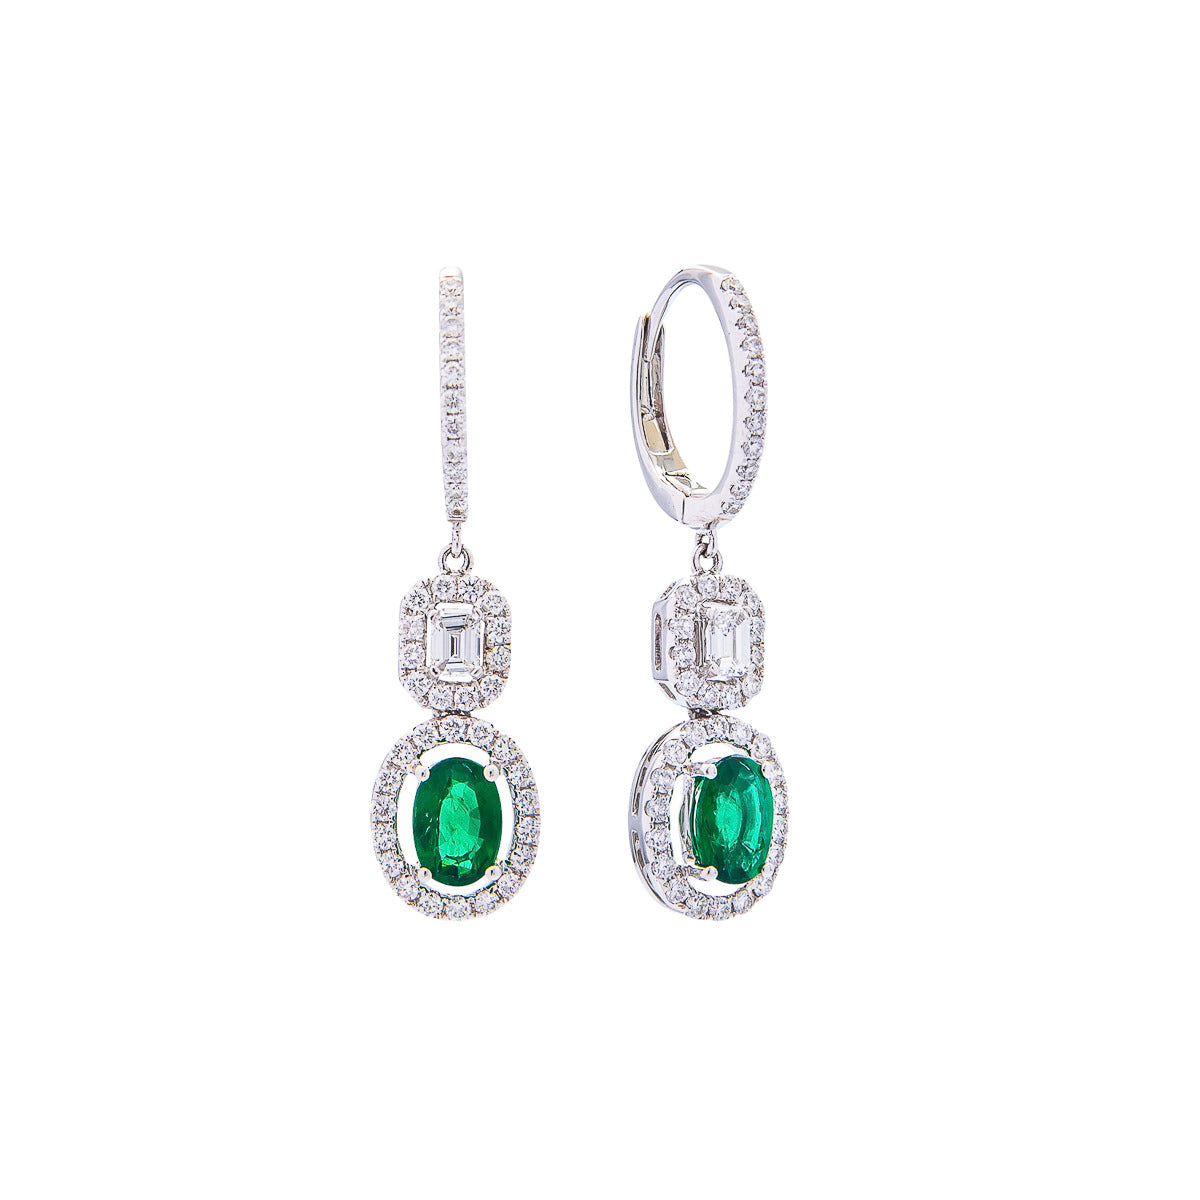 Sabel Collection 18K White Gold Oval Emerald and Emerald Cut Diamond Vintage Style Dangle Earrings